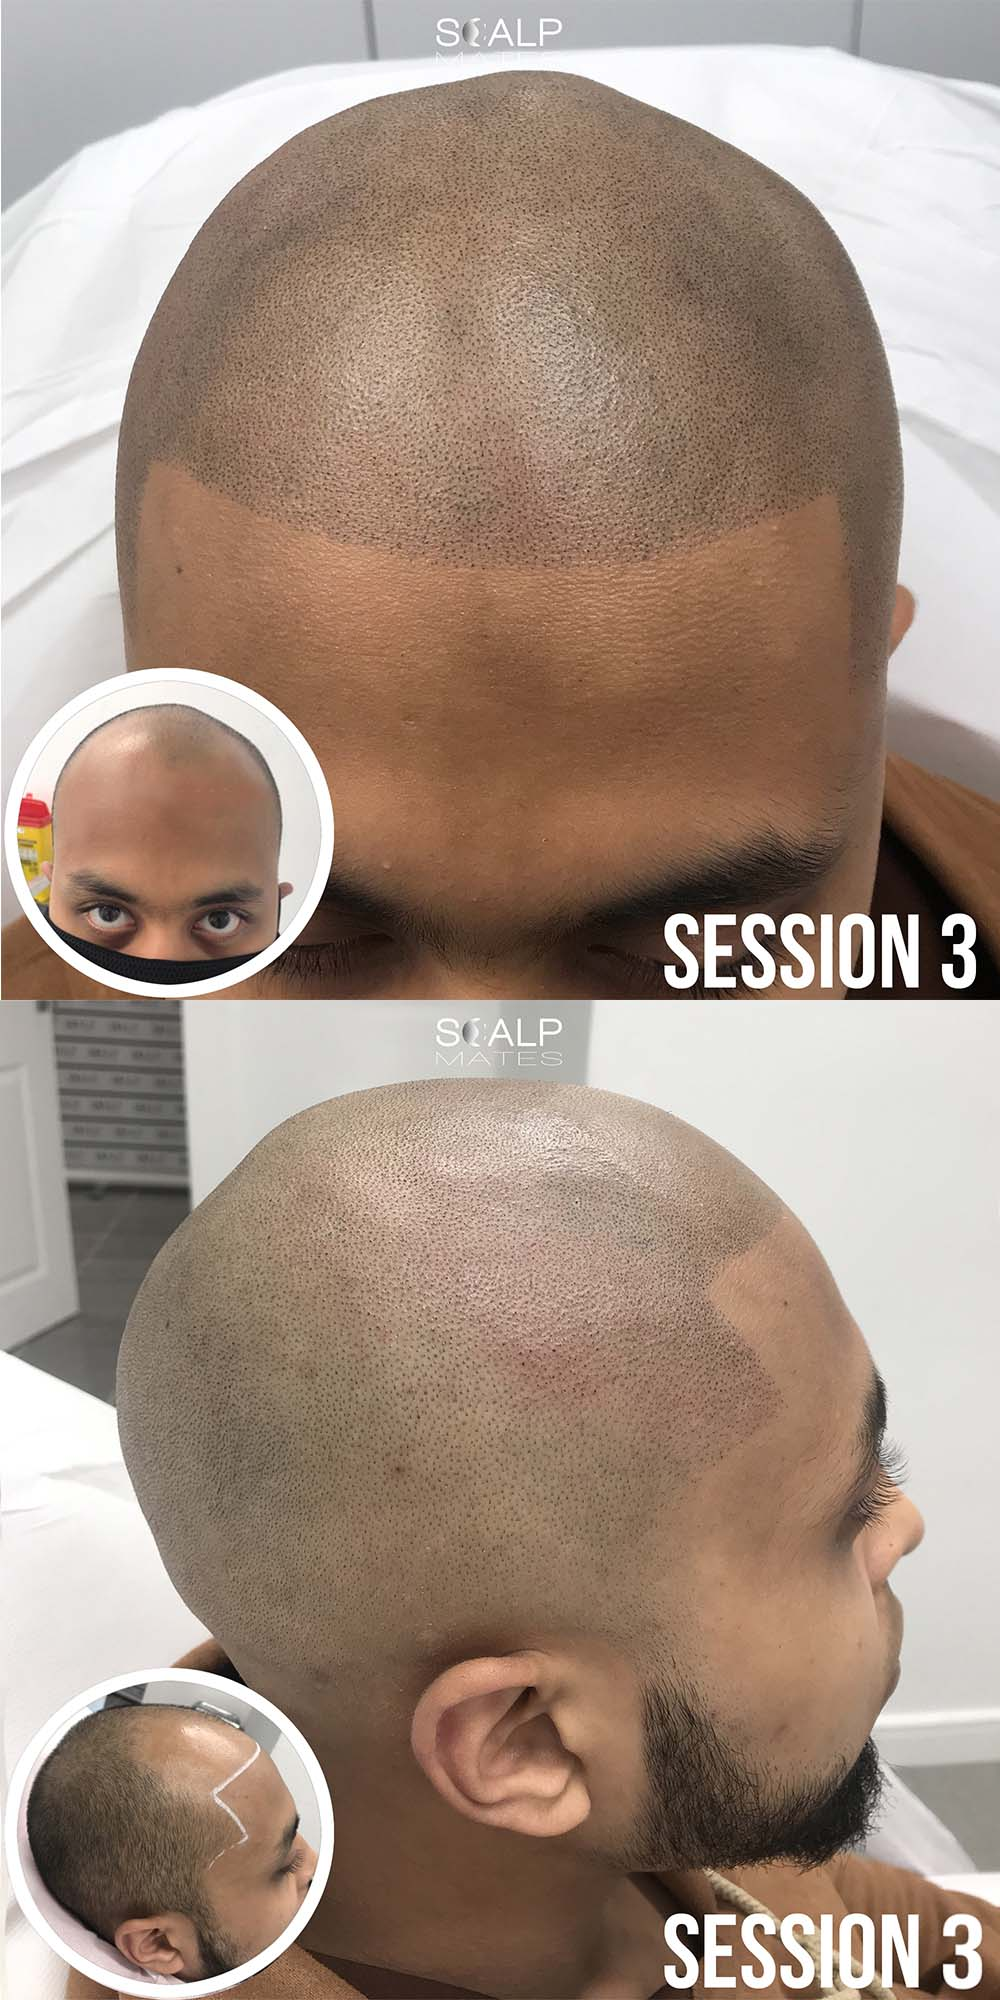 before and after scalp micropigmentation; smp in birmingham uk; hair loss; balding; bald head; alopecia; Hair tattoo on bald head;Scalp Mates; scalp micropigmentation cost uk;